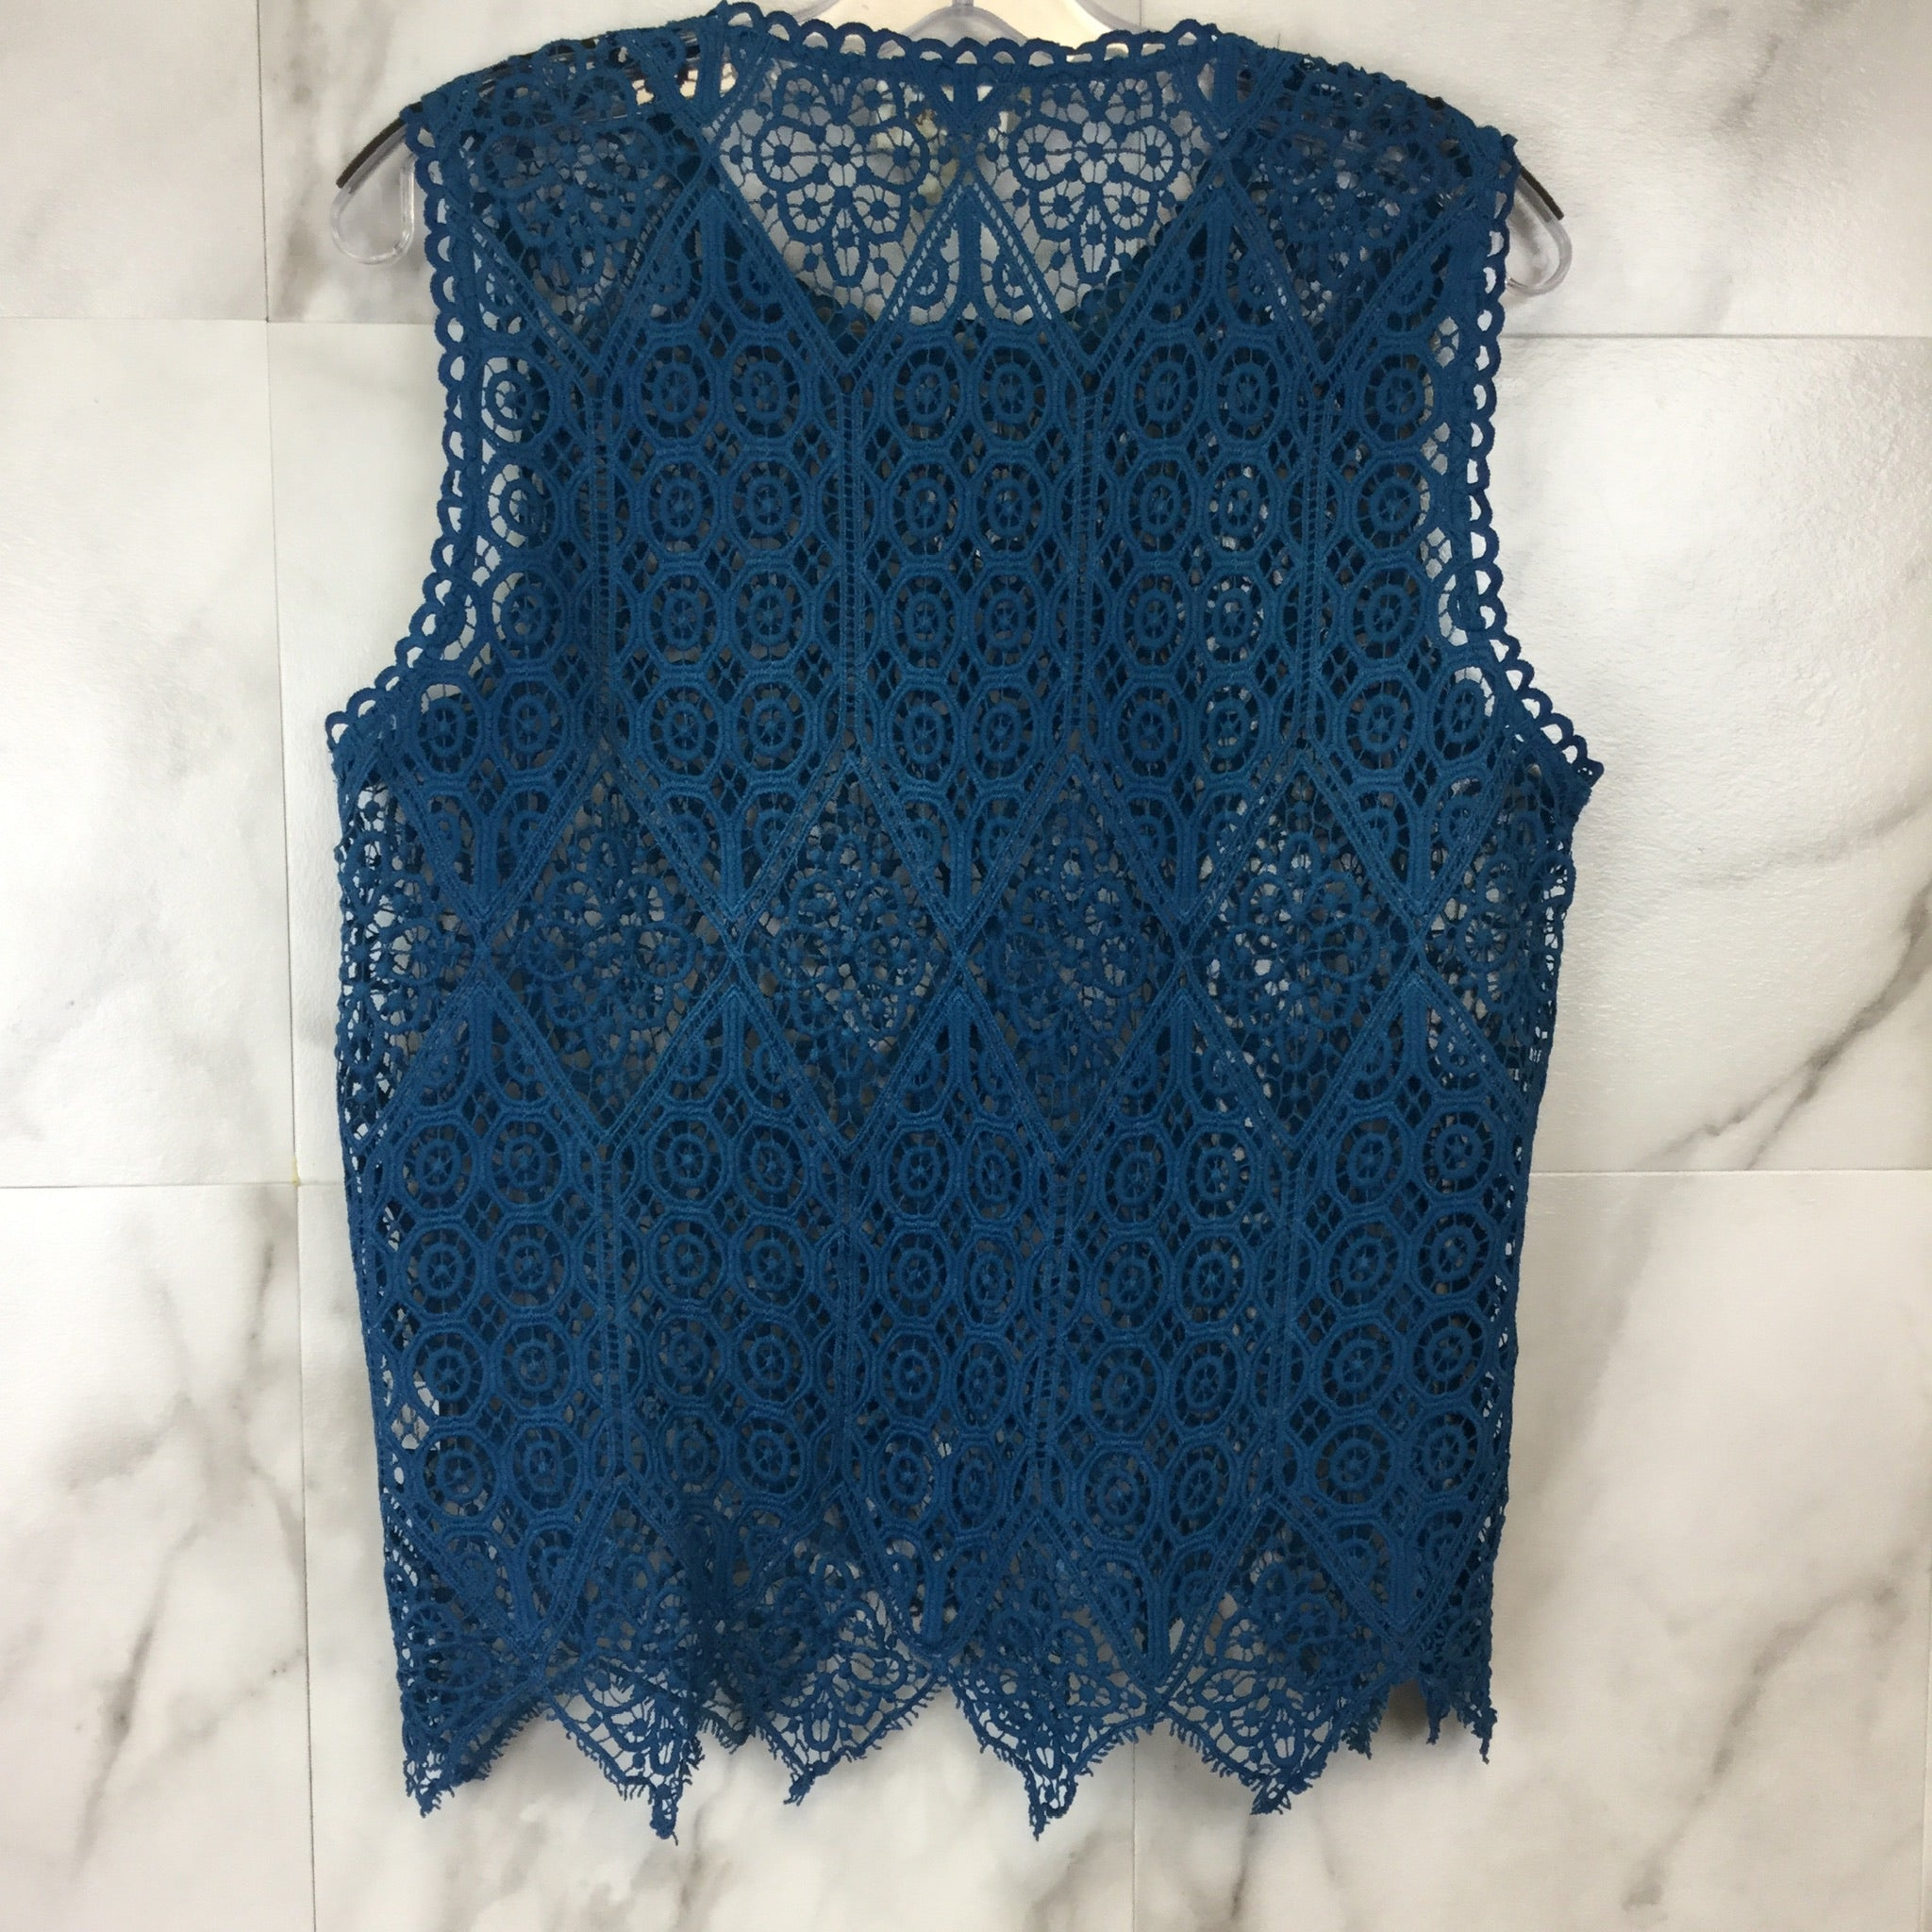 Anthropologie Deletta Scallop Lace Shell Top - size XS